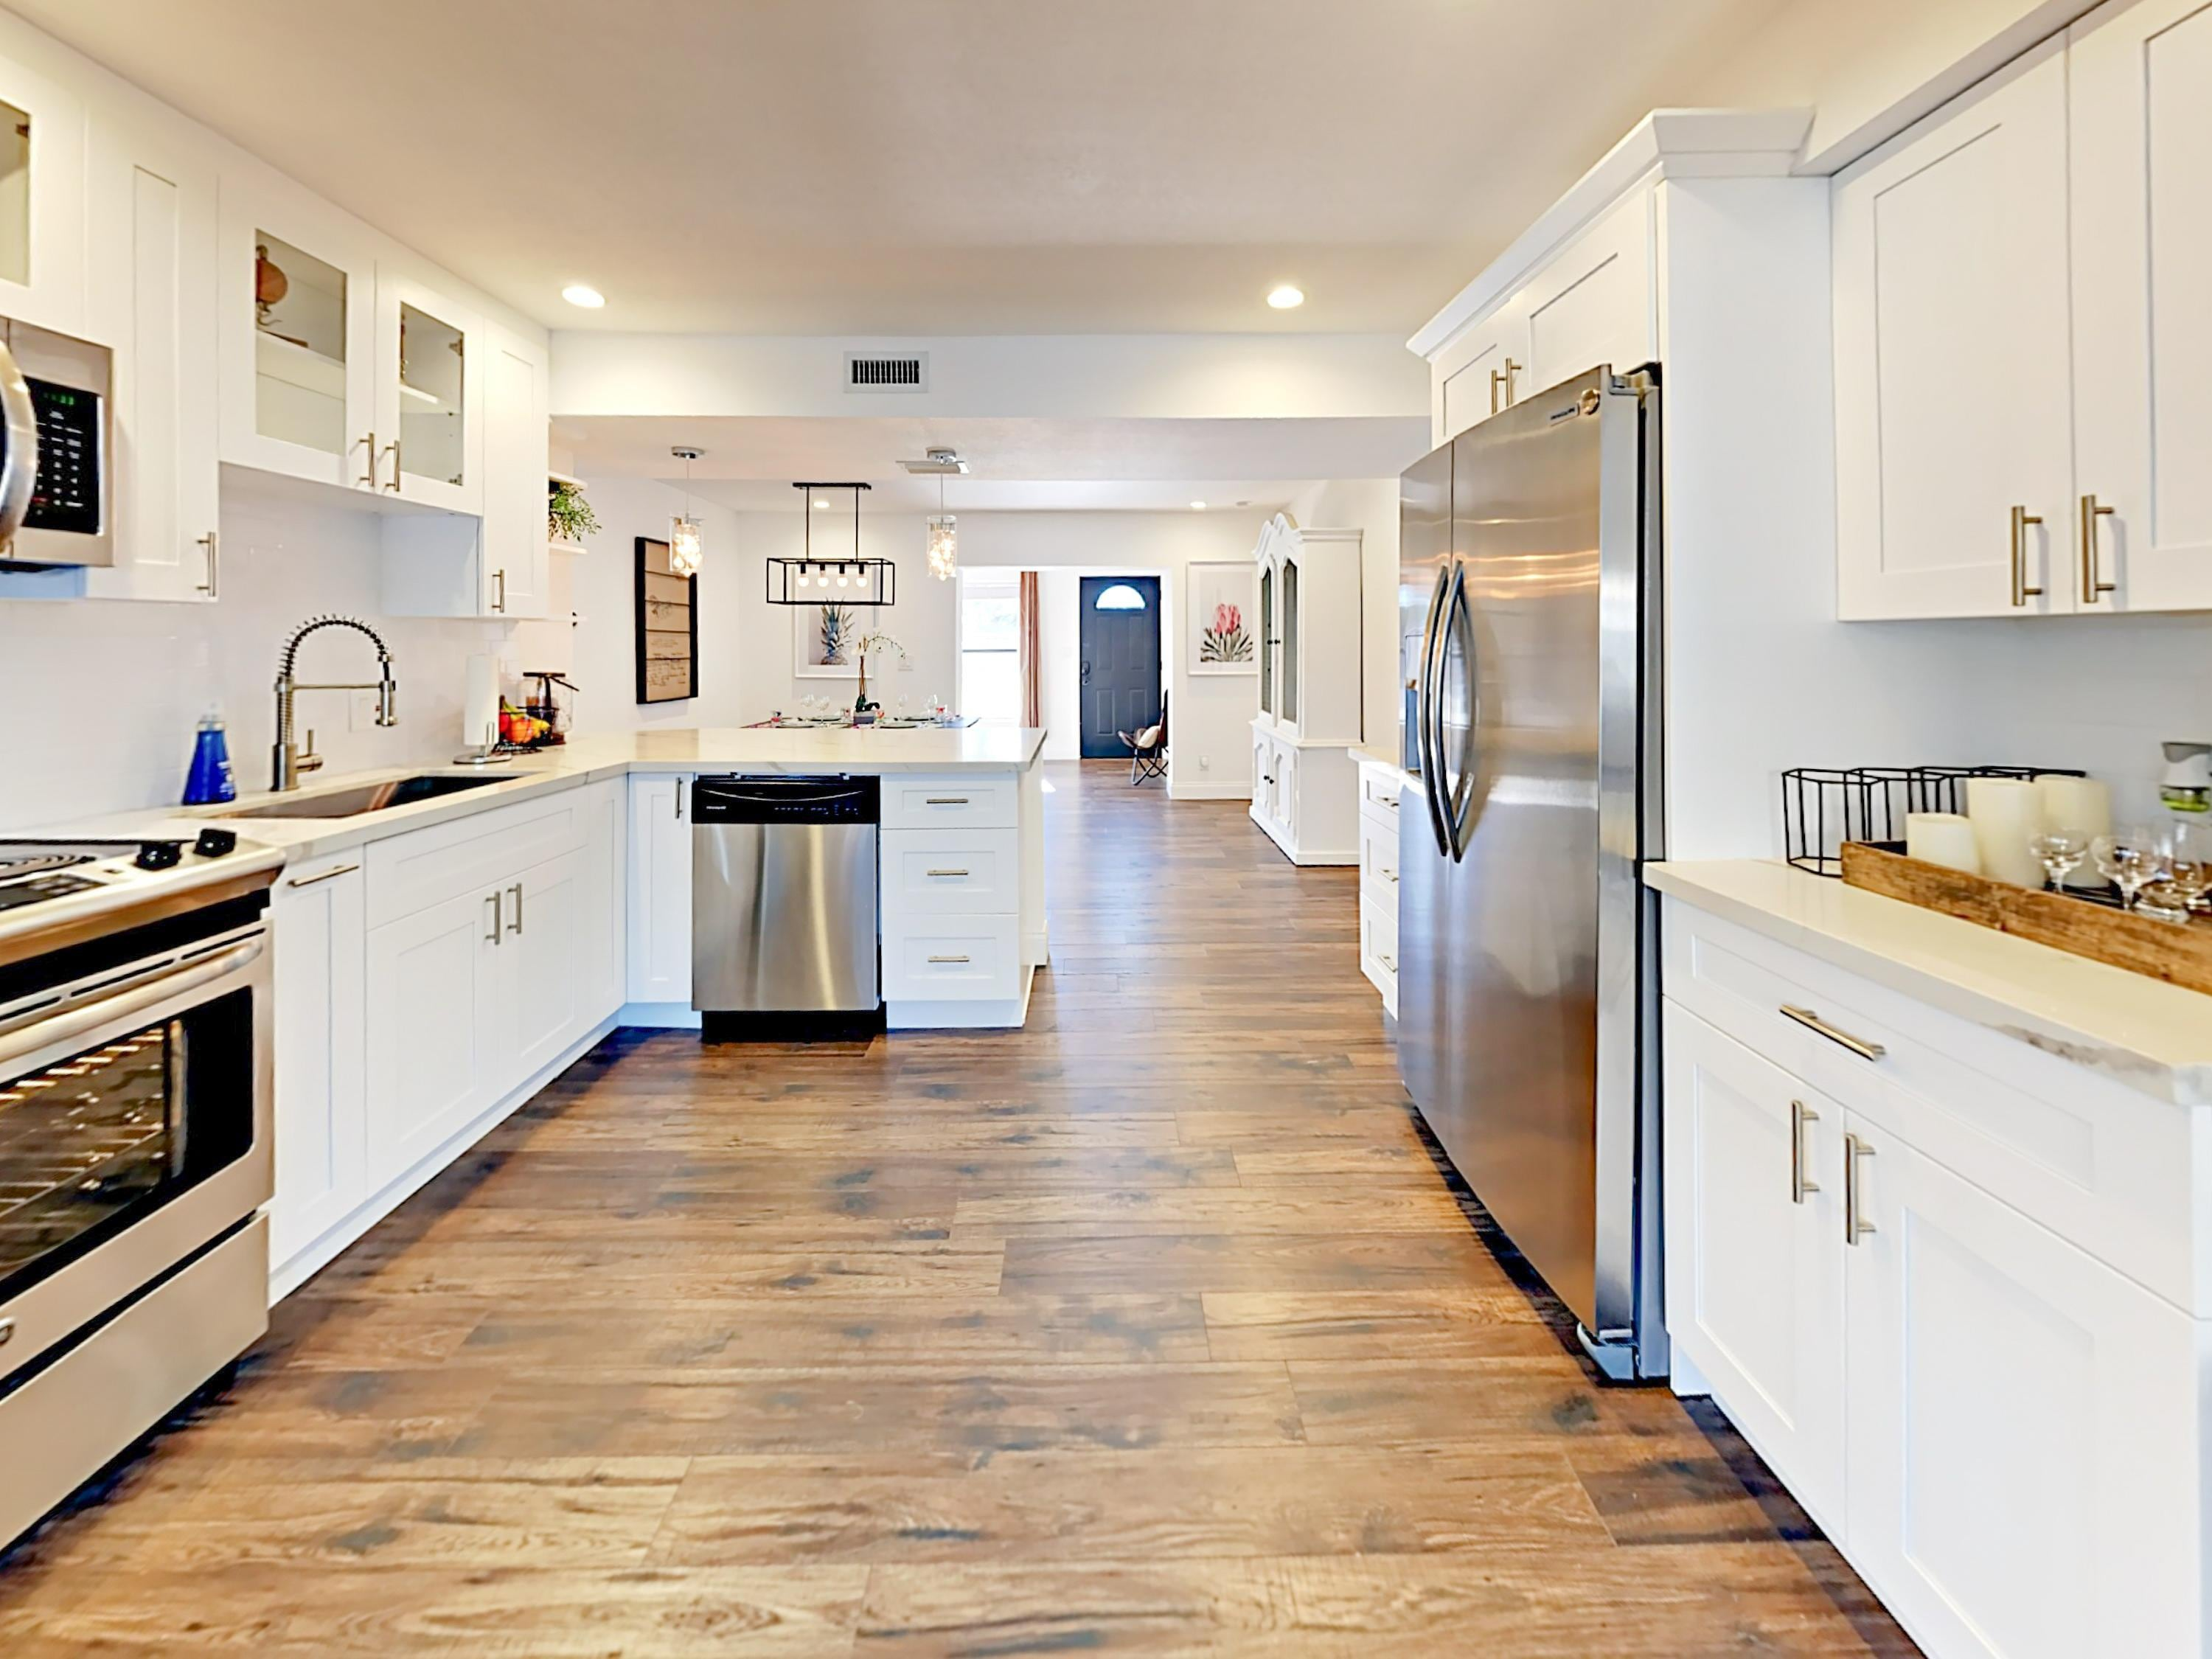 Welcome to Lantana! White marble countertops line a posh kitchen, outfitted with stainless steel appliances.